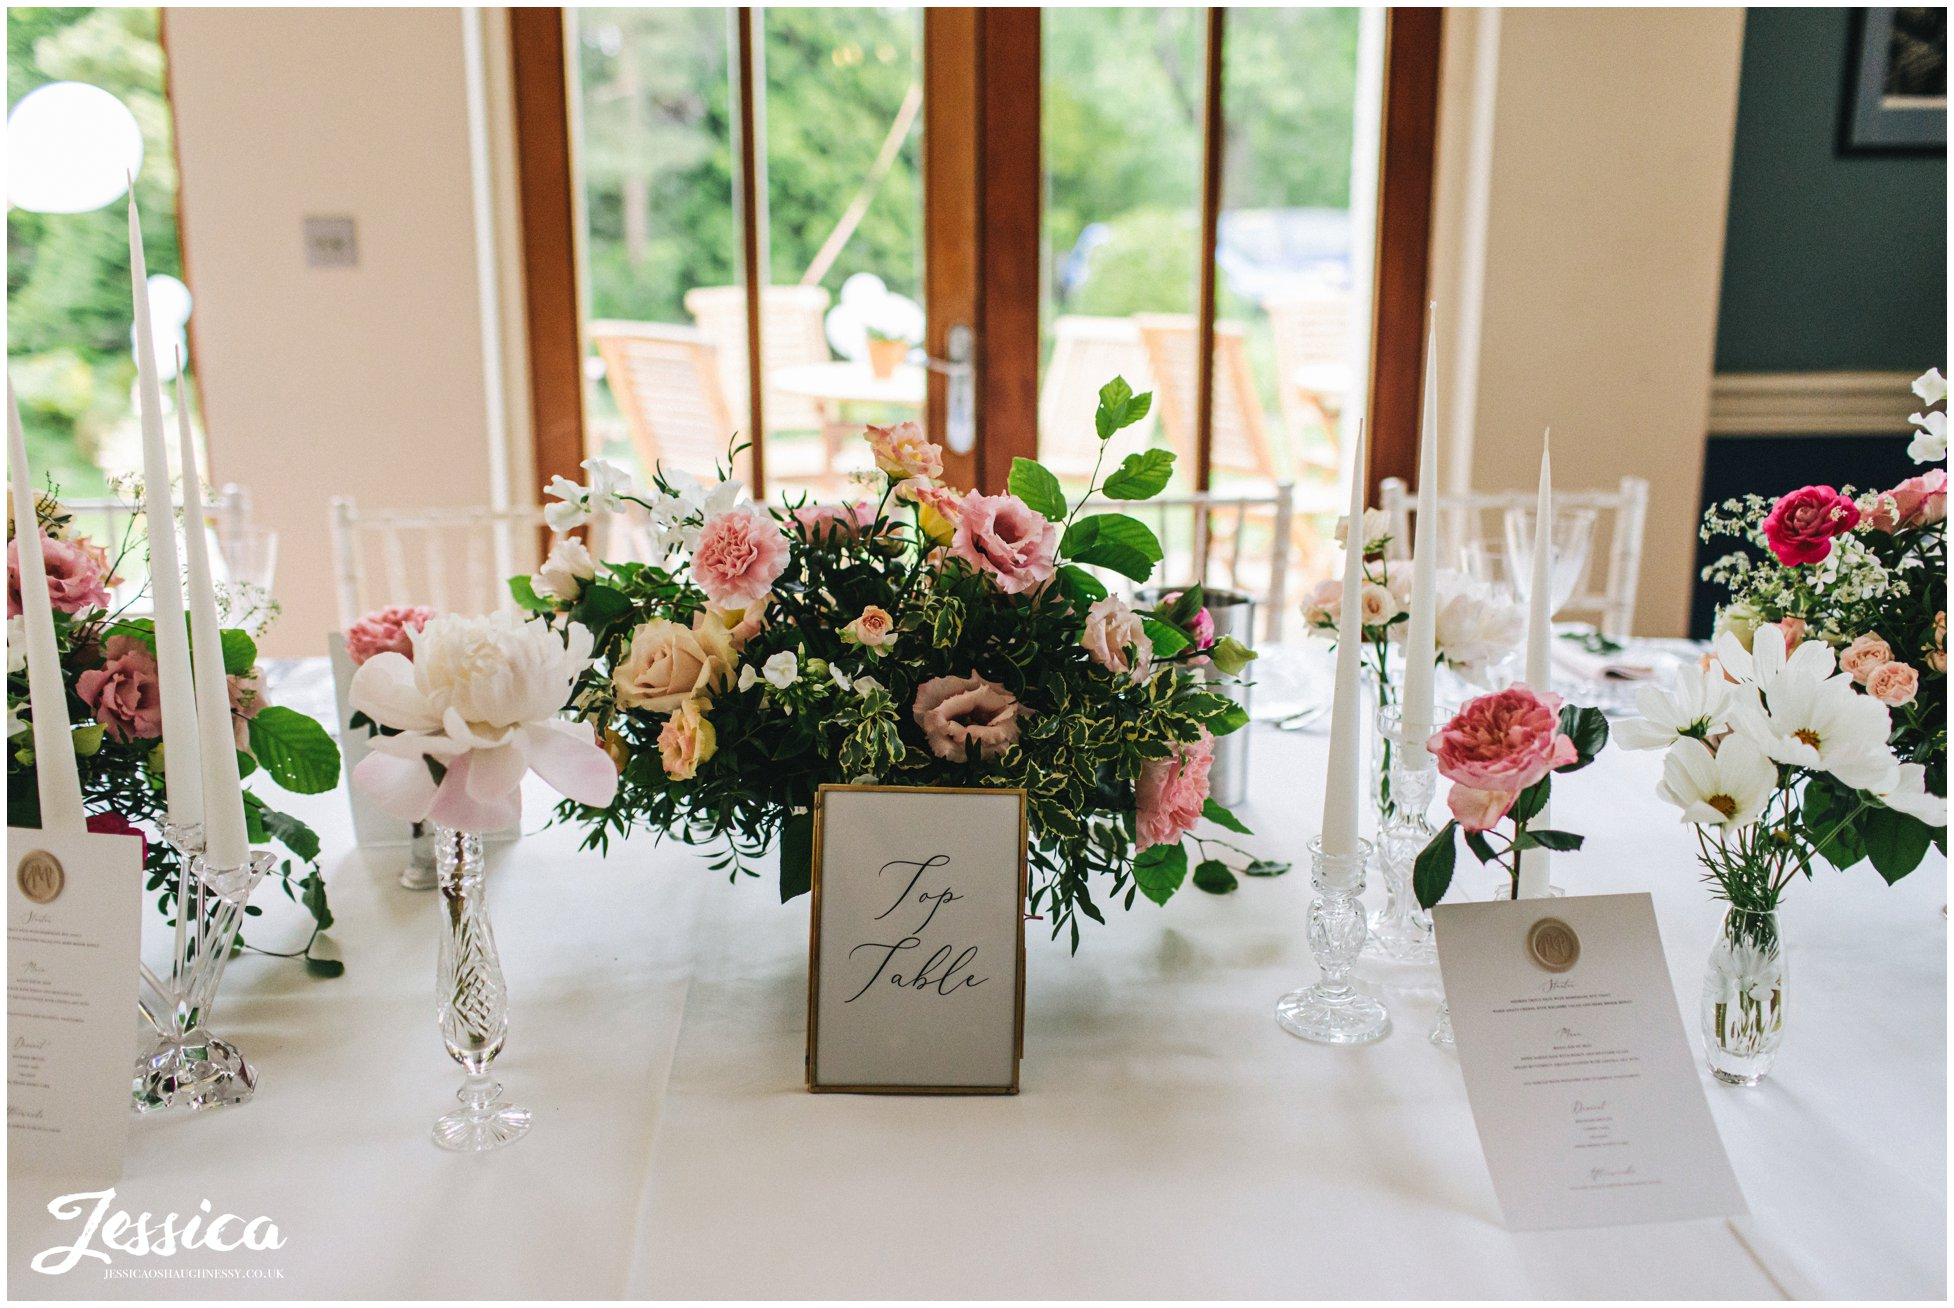 pink florals decorate the wedding tables